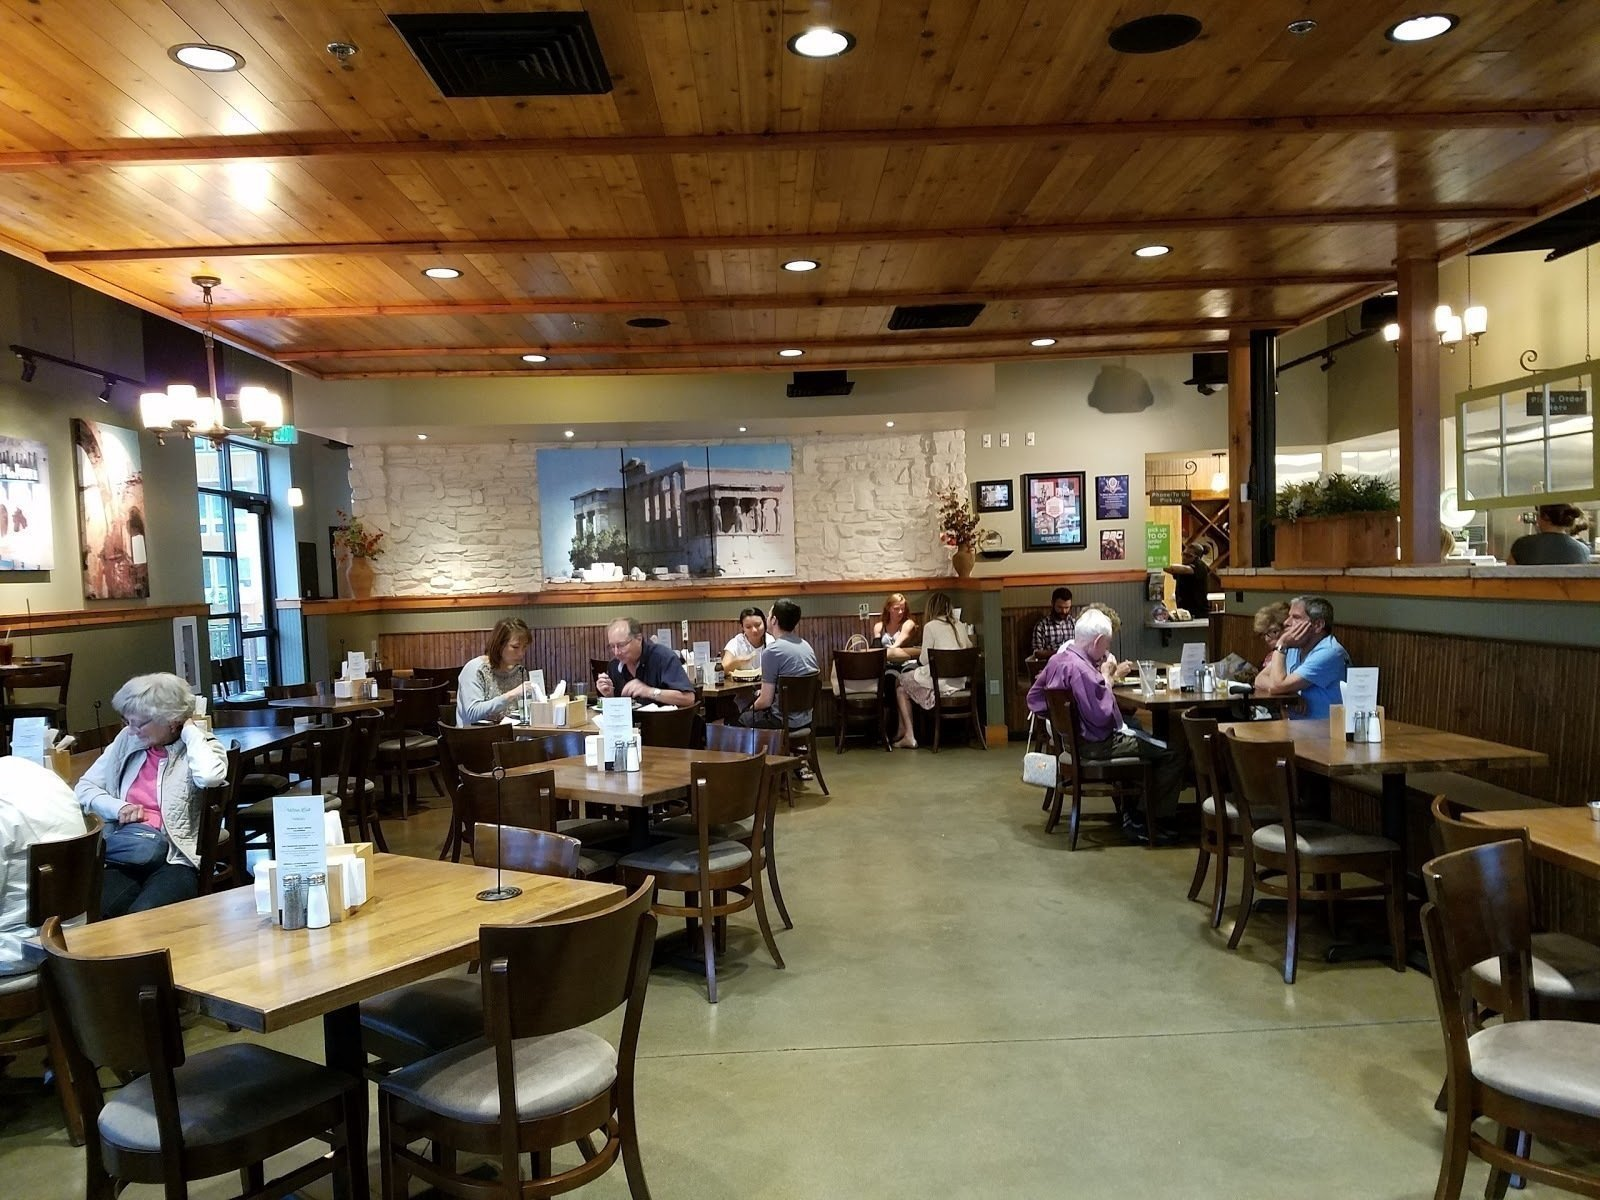 Taziki's Mediterranean Cafe: A Work-Friendly Place in Denver